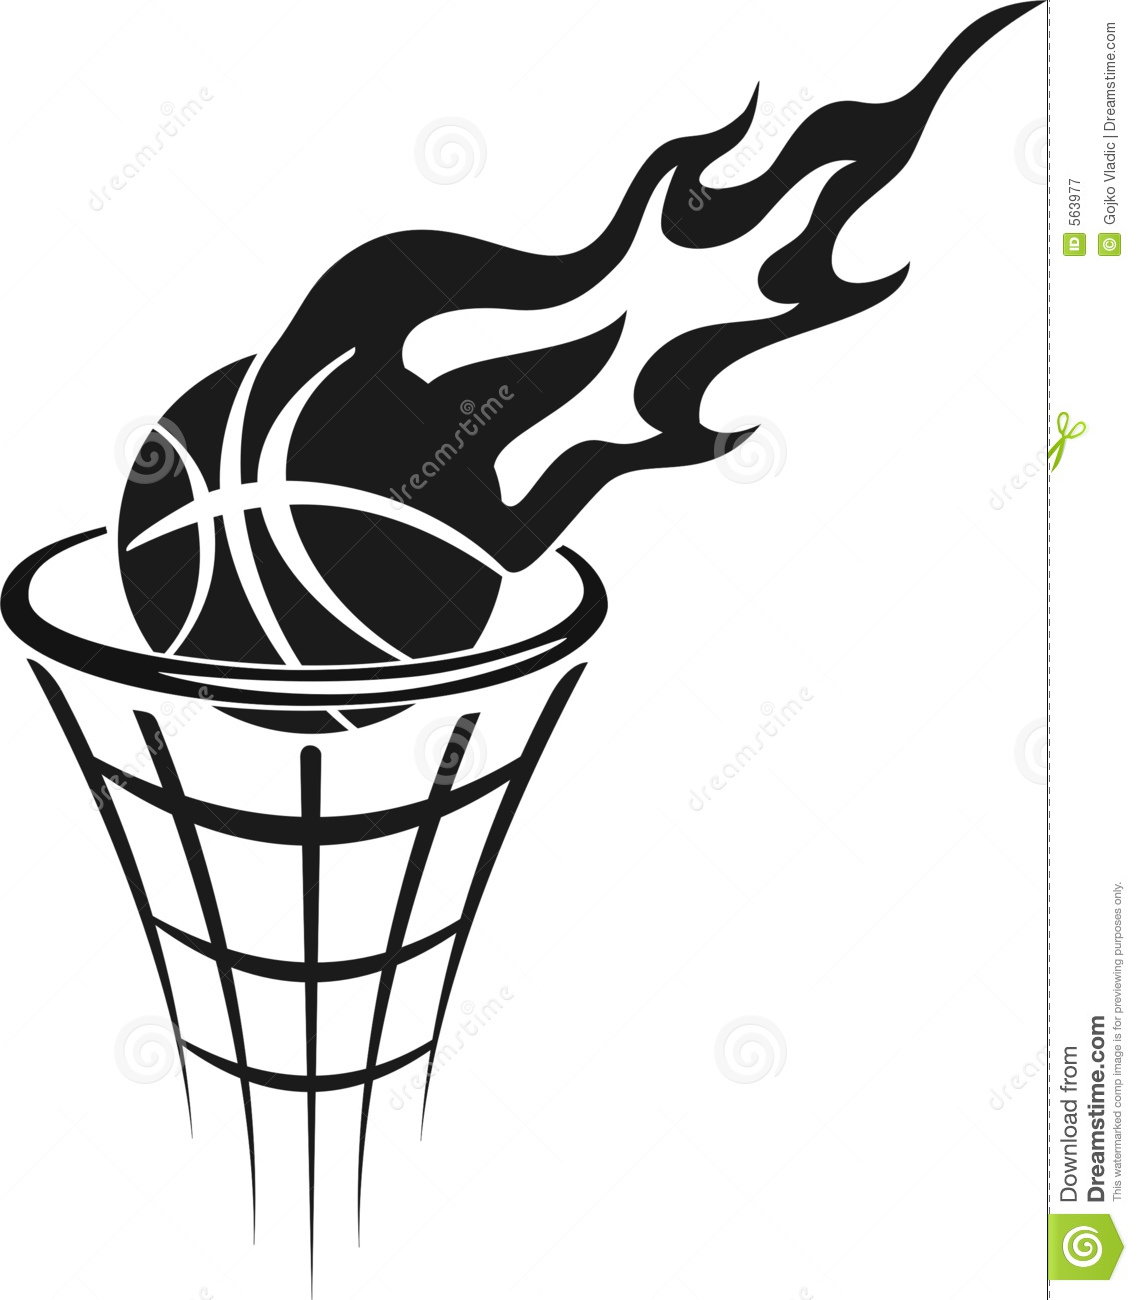 Basketball Stock Illustration Illustration Of Ball